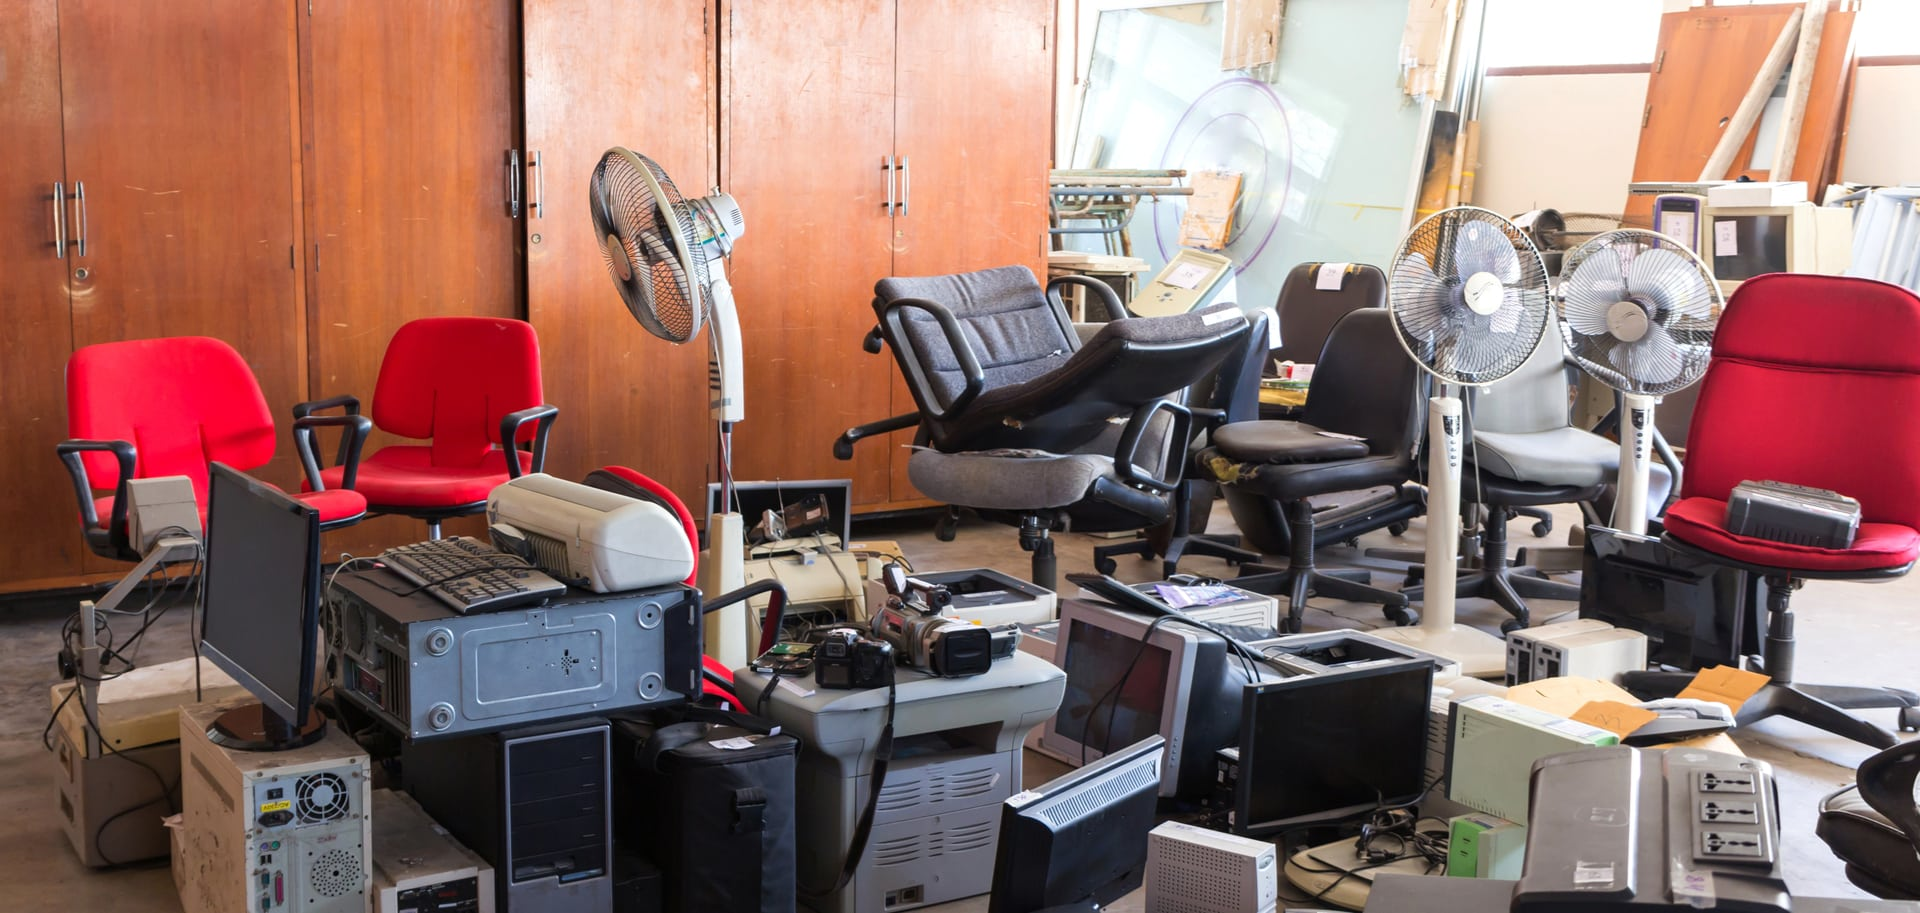 office in disarray